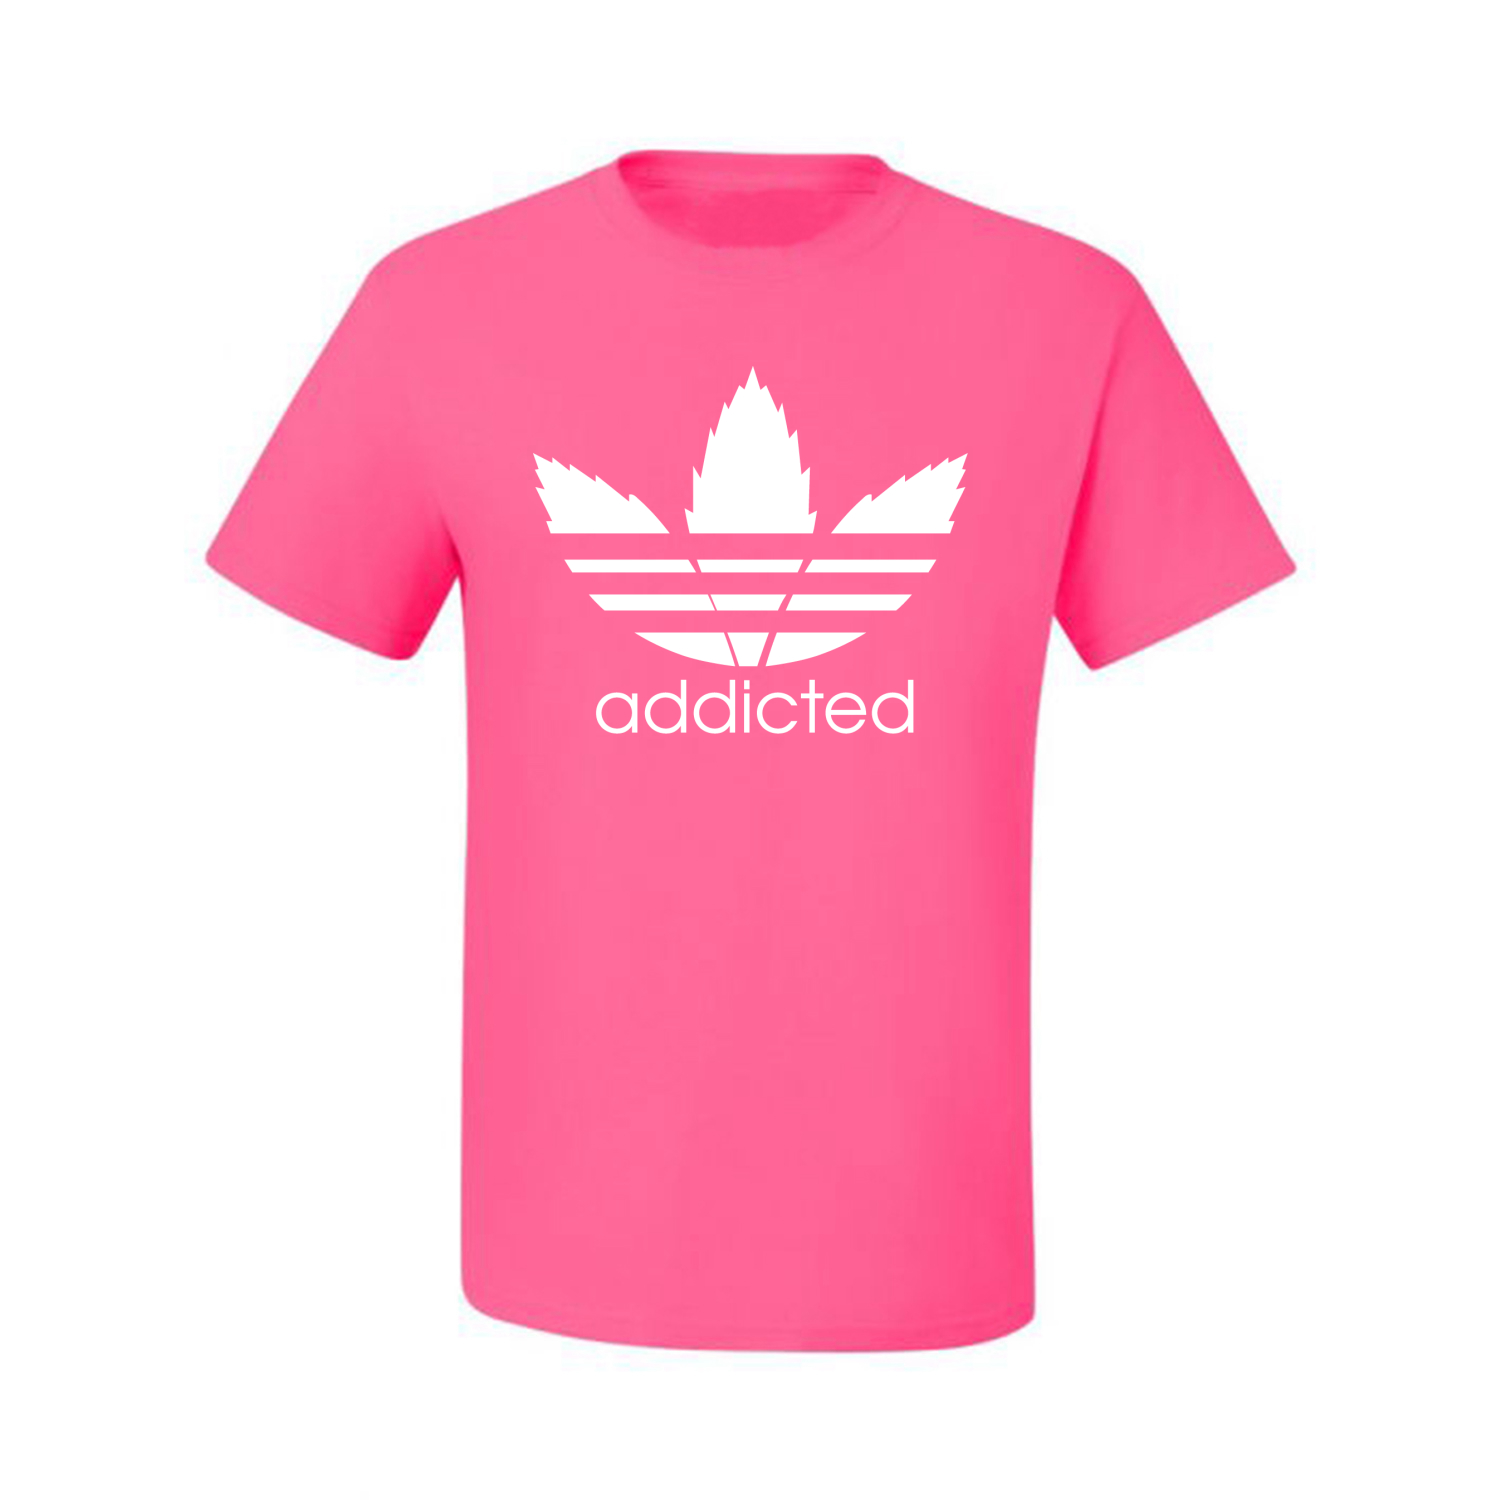 Addicted-White-Pot-Leaf-Mens-Weed-T-Shirt-Graphic-Parody-Tee thumbnail 26